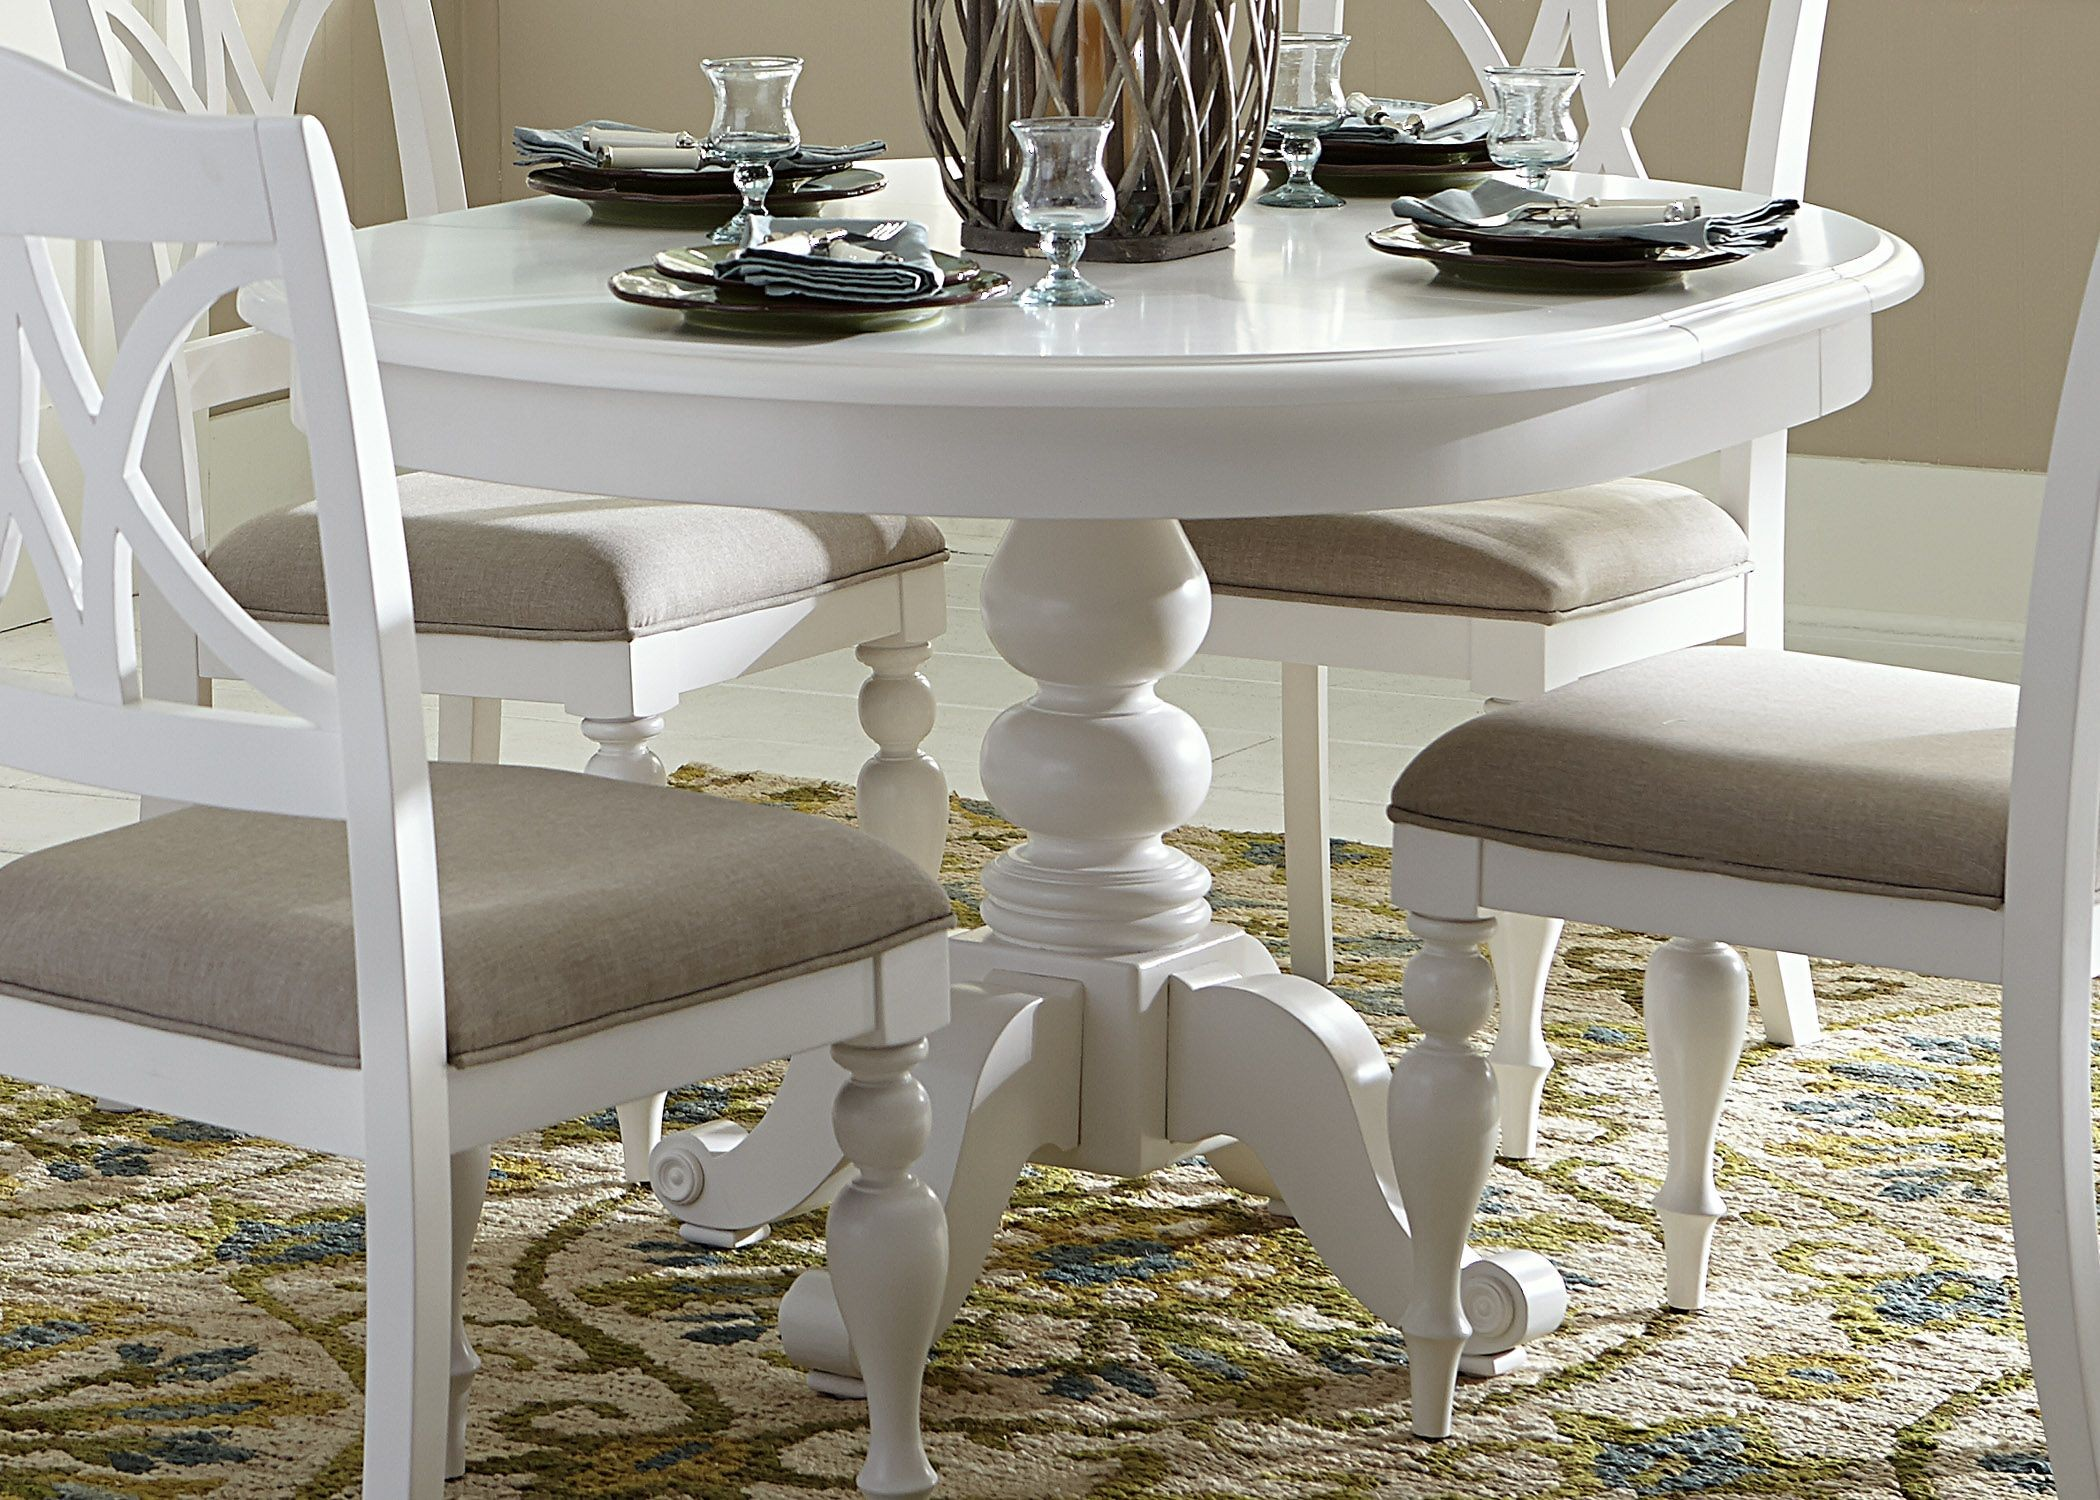 Summer House Oyster White Oyster White Round Pedestal Dining Table From Liberty 607 T4254 P4254